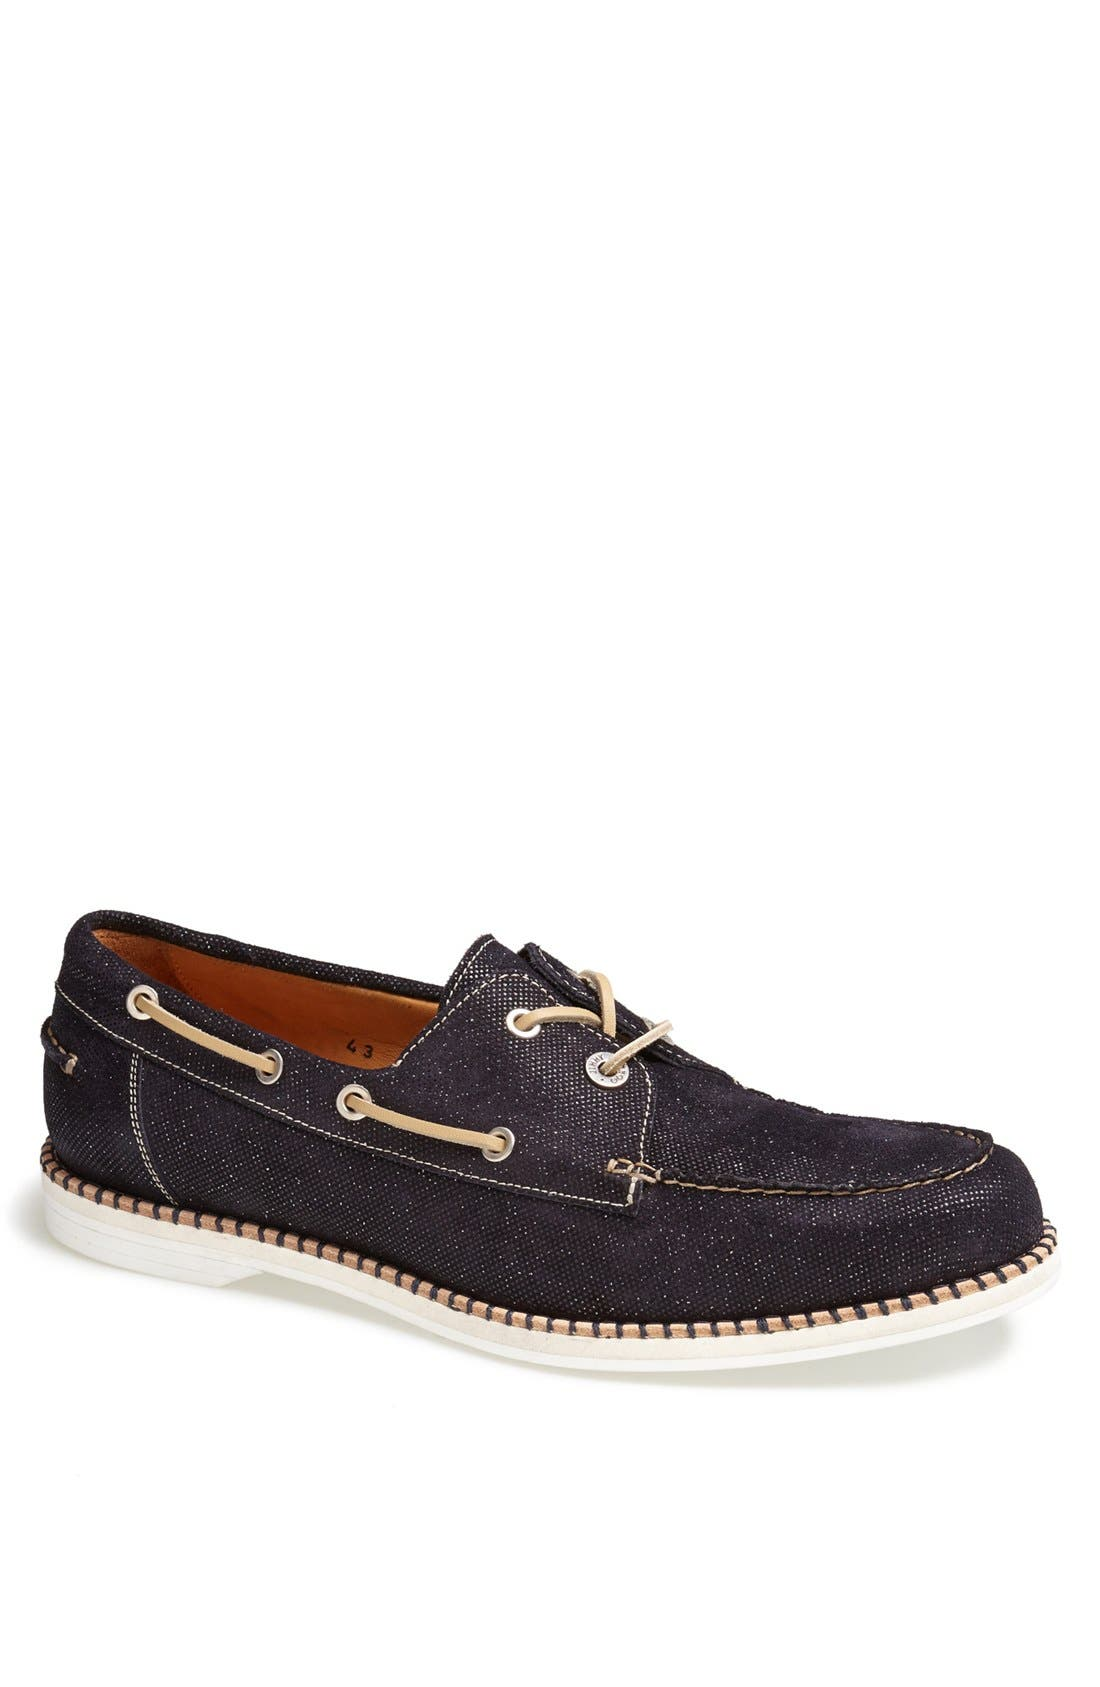 Alternate Image 1 Selected - Jimmy Choo 'Danby' Glitter Boat Shoe